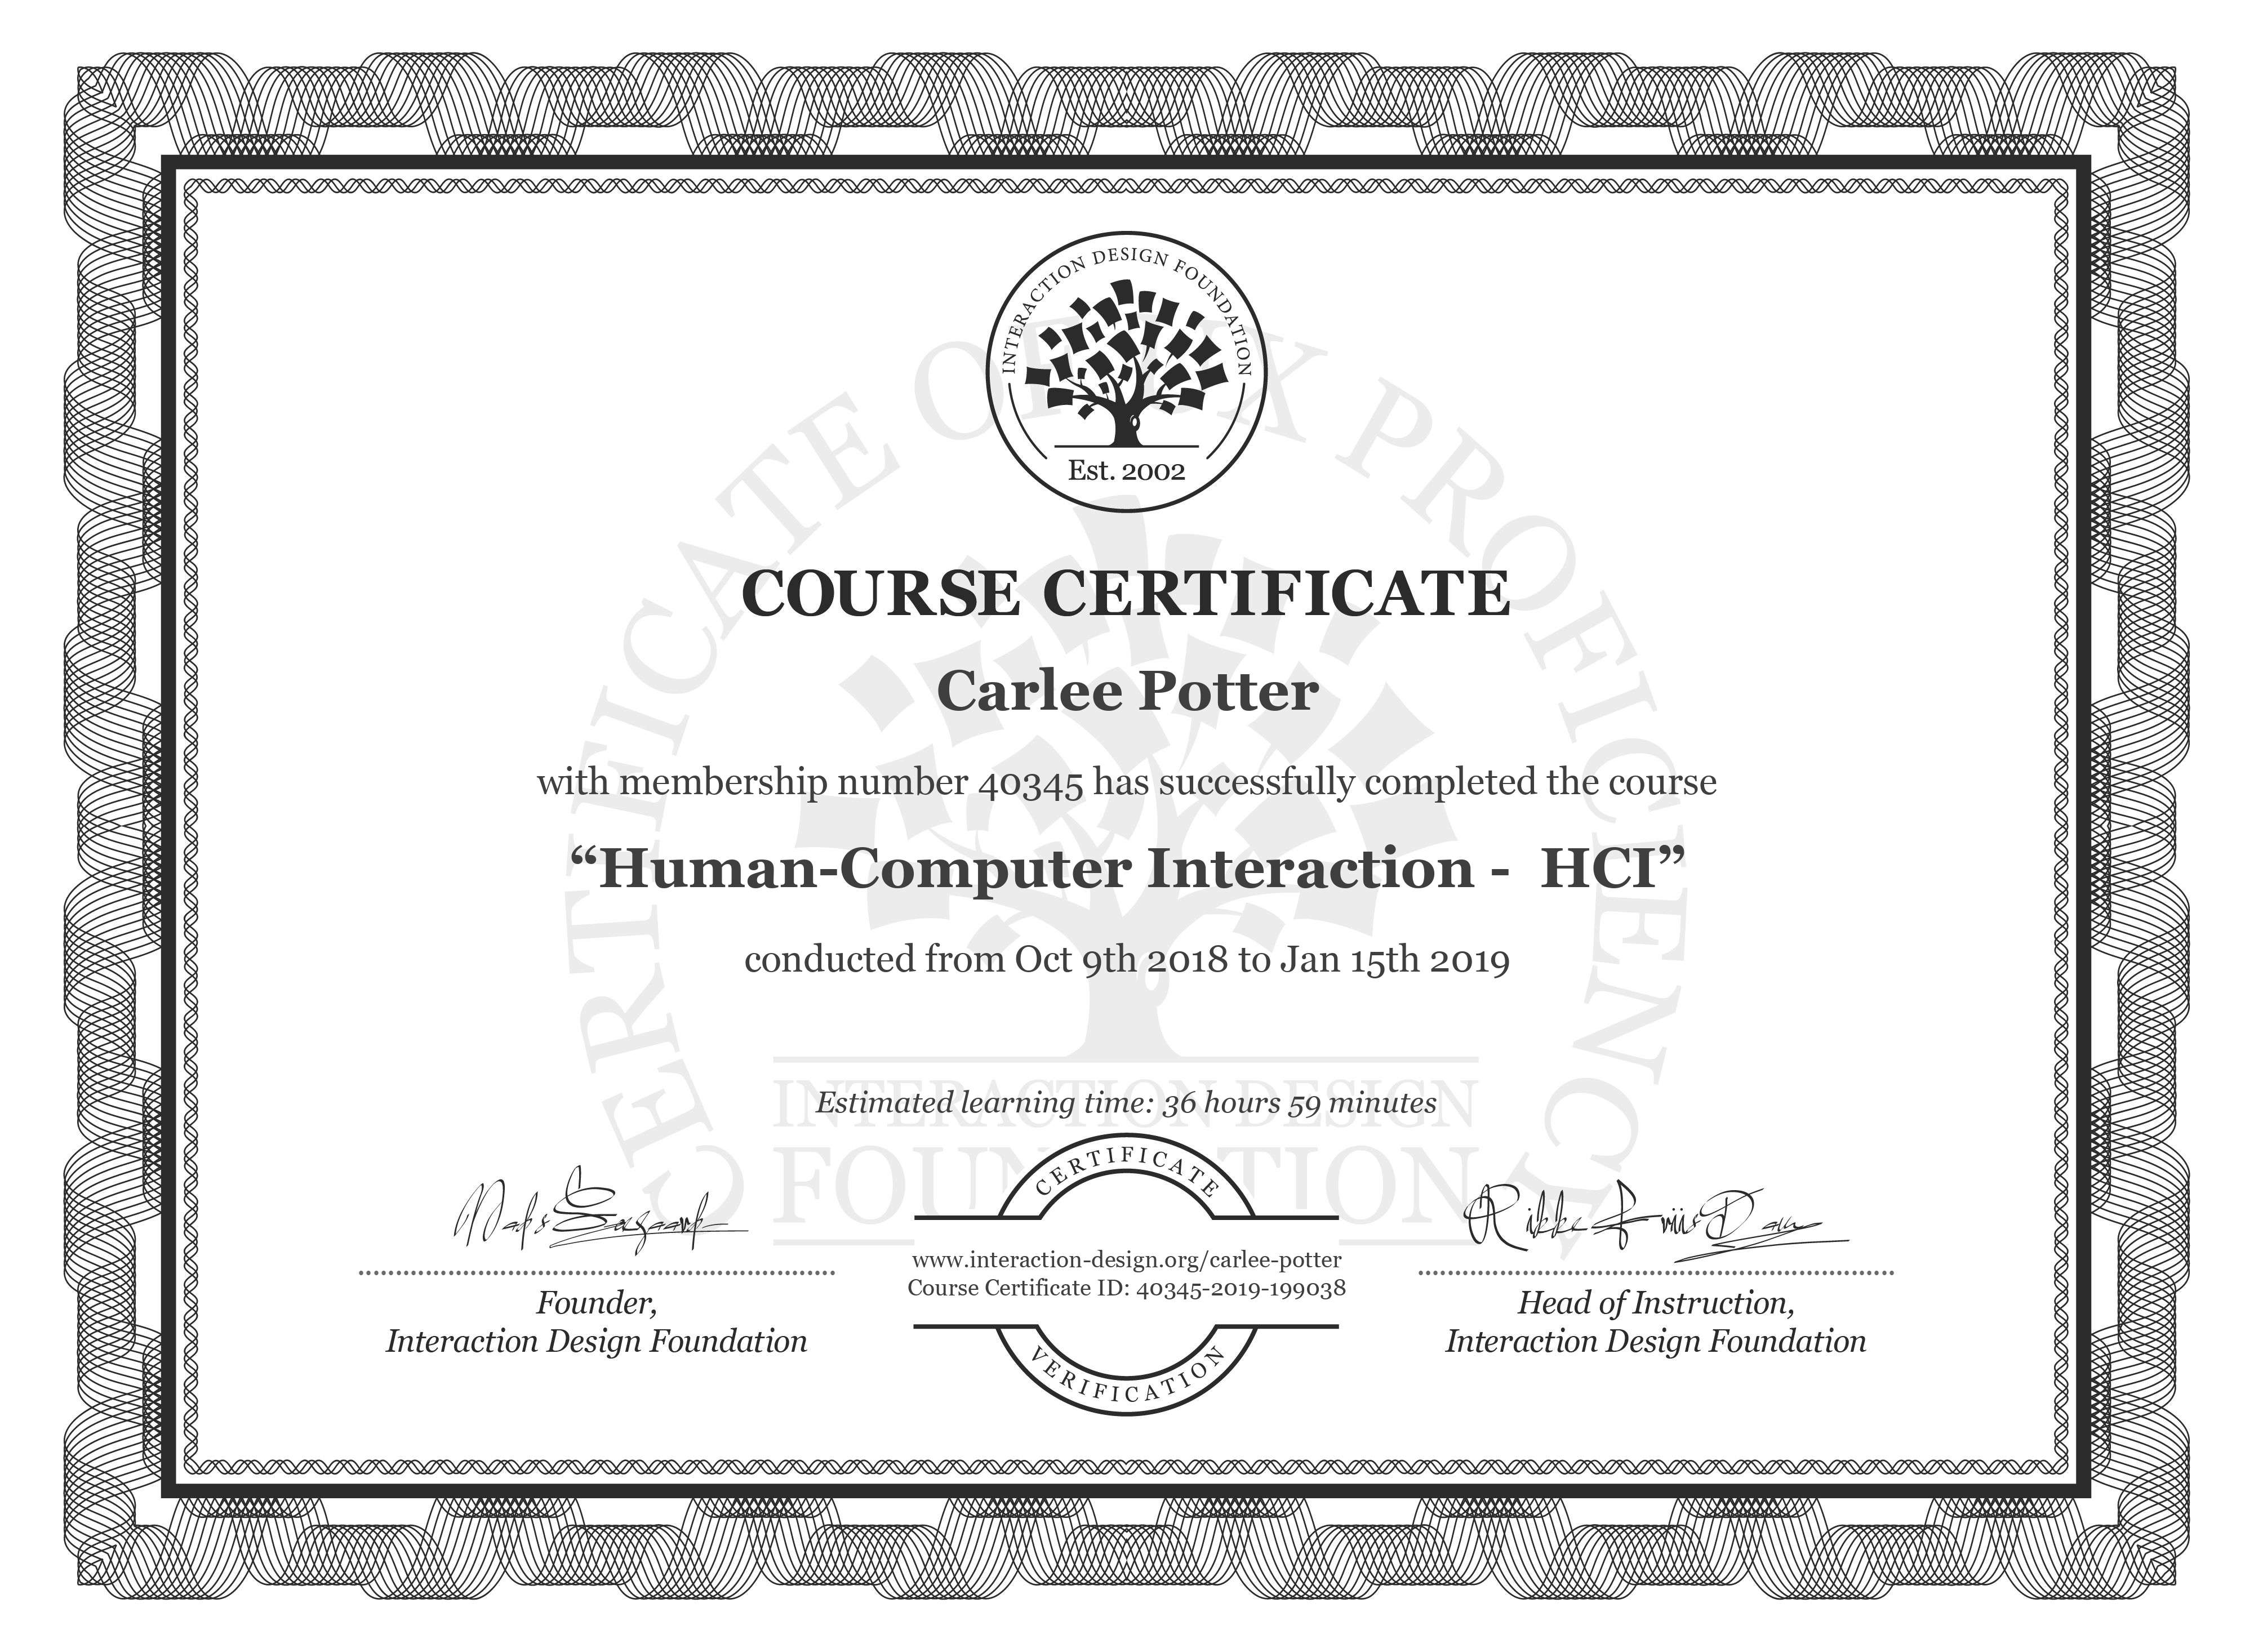 Carlee Potter: Course Certificate - Human-Computer Interaction -  HCI